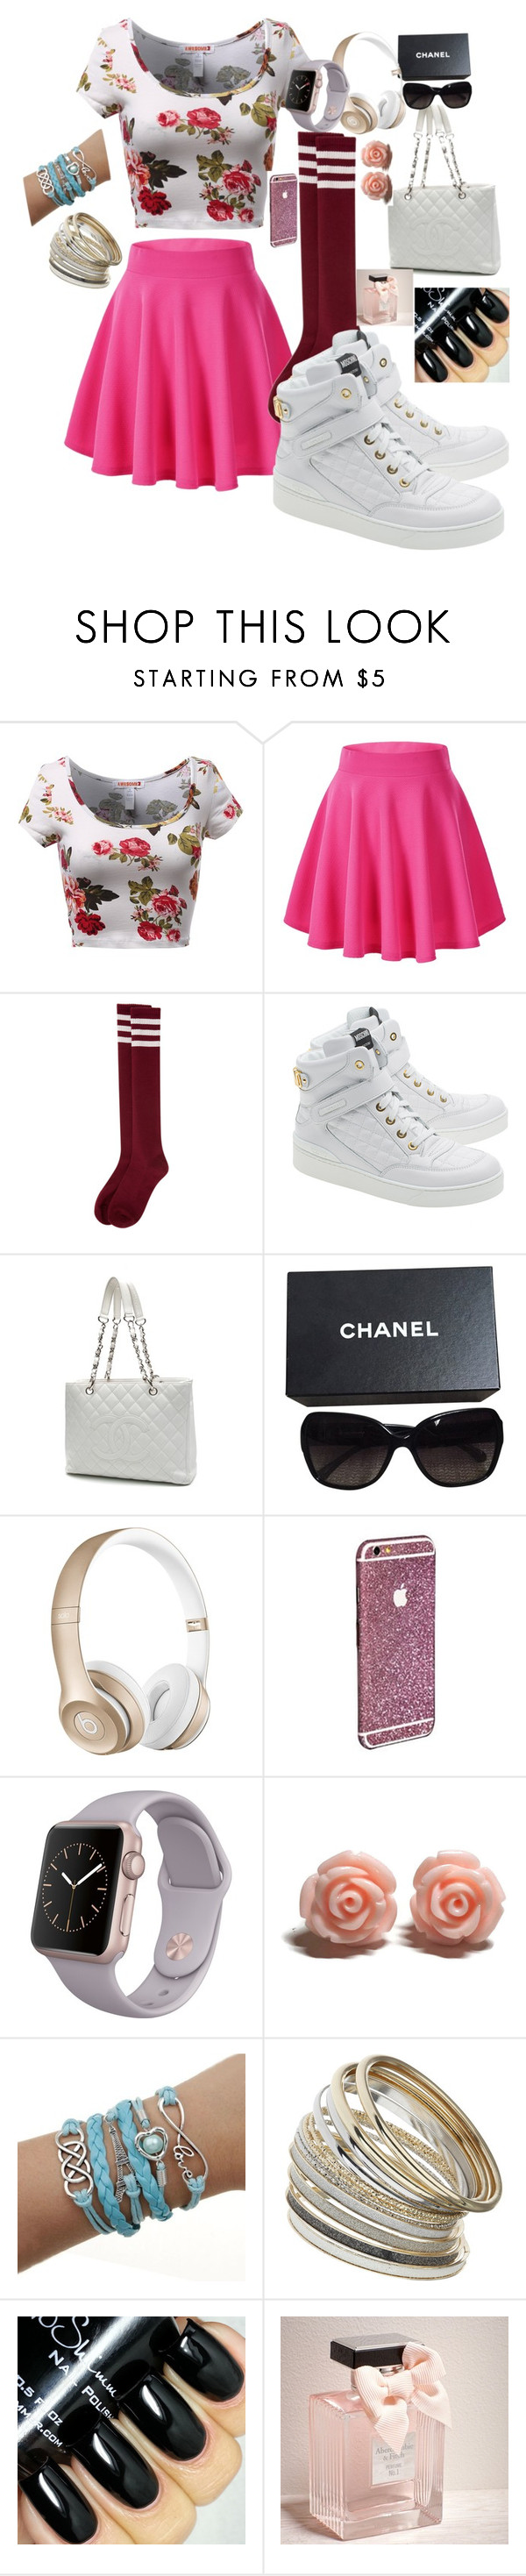 """Is your phone done changer..... Barely"" by goddess12 ❤ liked on Polyvore featuring Moschino, Chanel, Beats by Dr. Dre, Miss Selfridge, Abercrombie & Fitch, women's clothing, women, female, woman and misses"